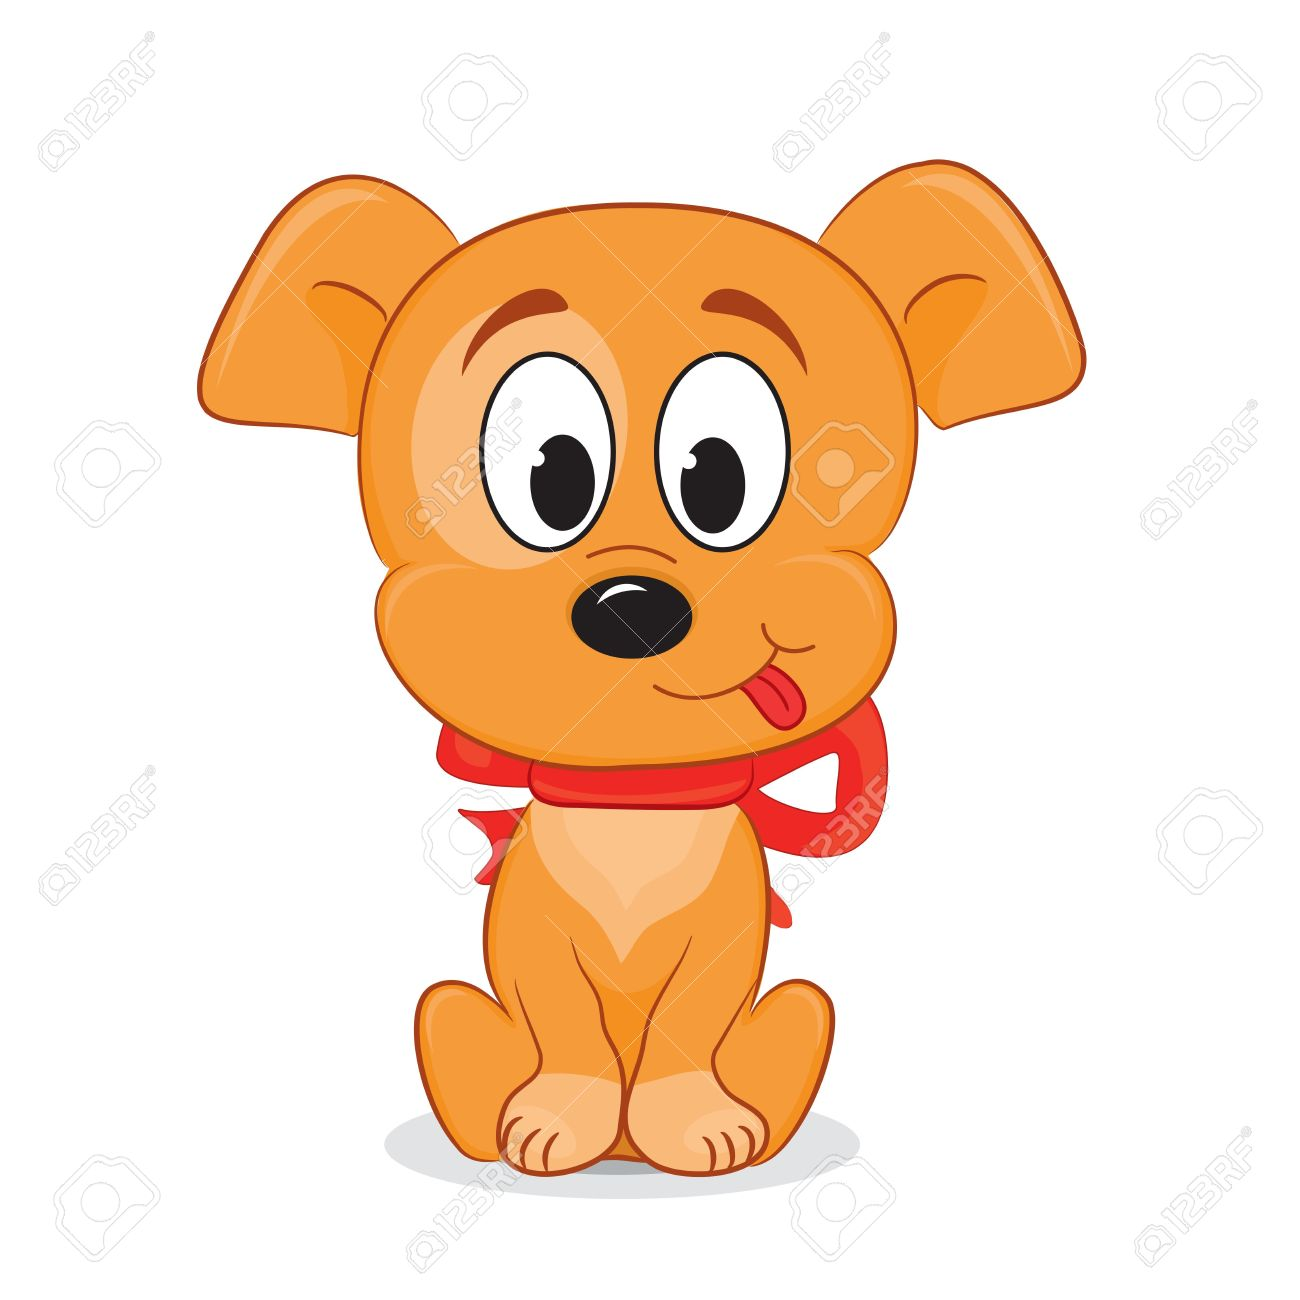 1300x1300 A Cute Cartoon Dog Vector Illustration Royalty Free Cliparts